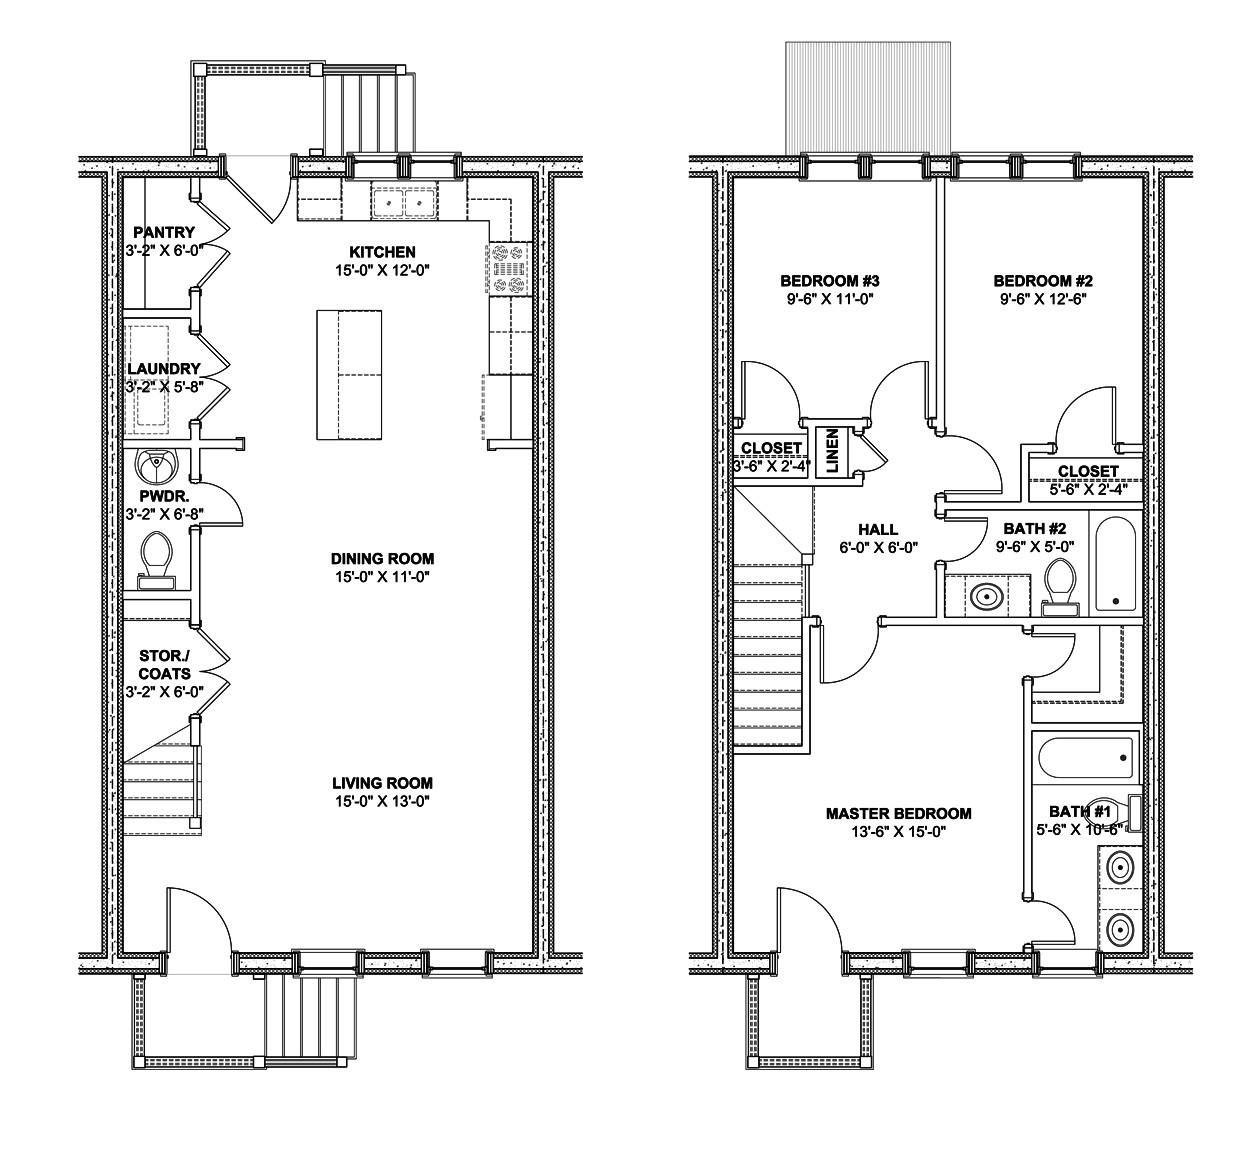 Row Housing Plans Rowhouse Plans Find House Plans